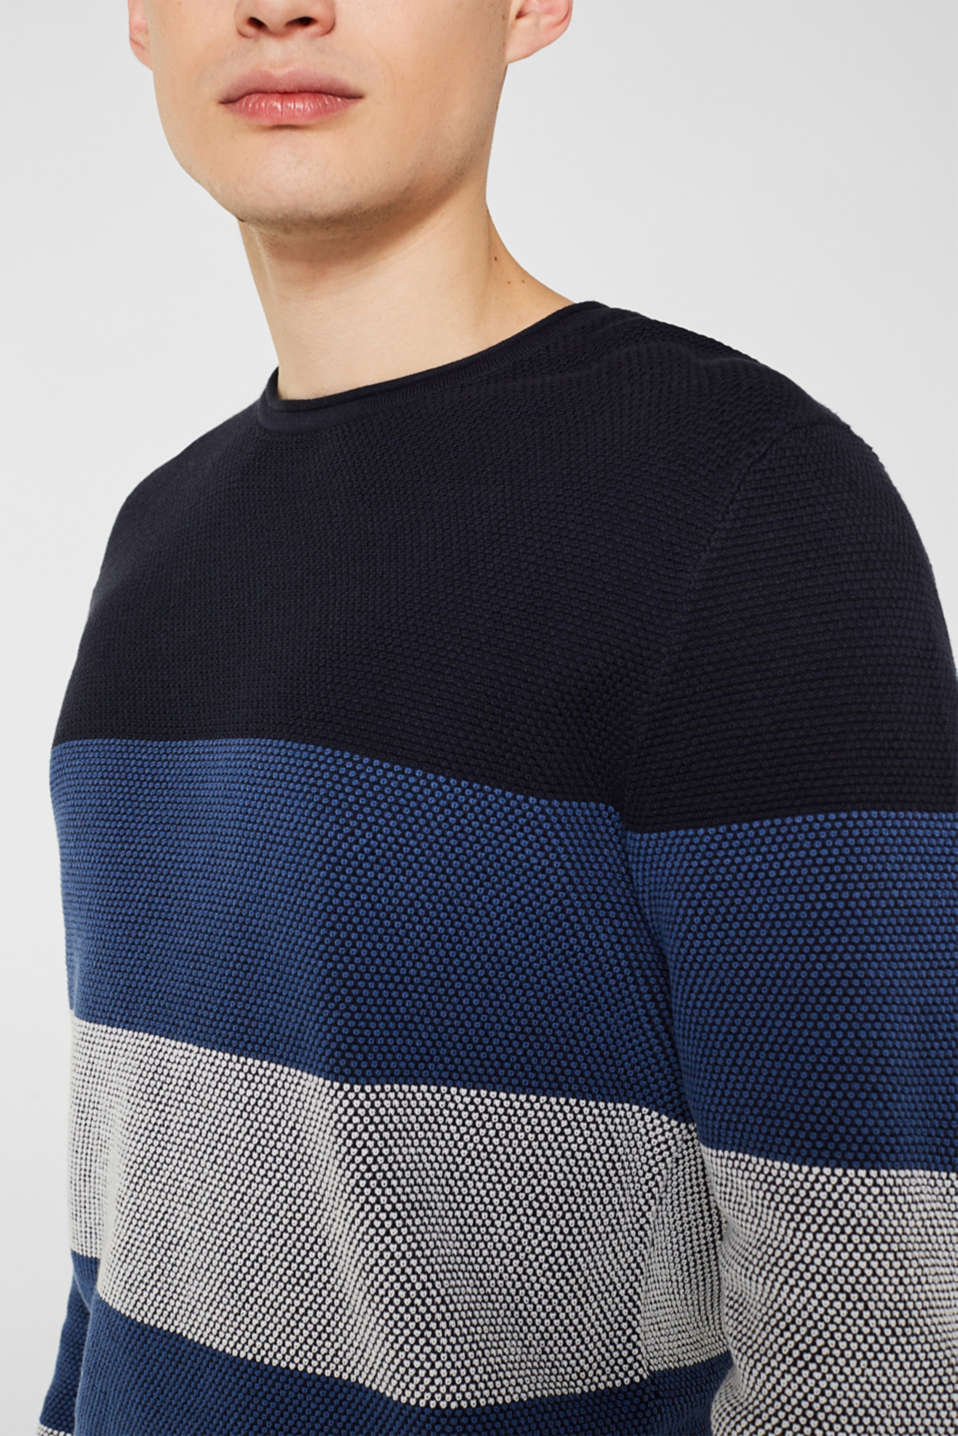 Textured jumper made of 100% cotton, BLUE 3, detail image number 2